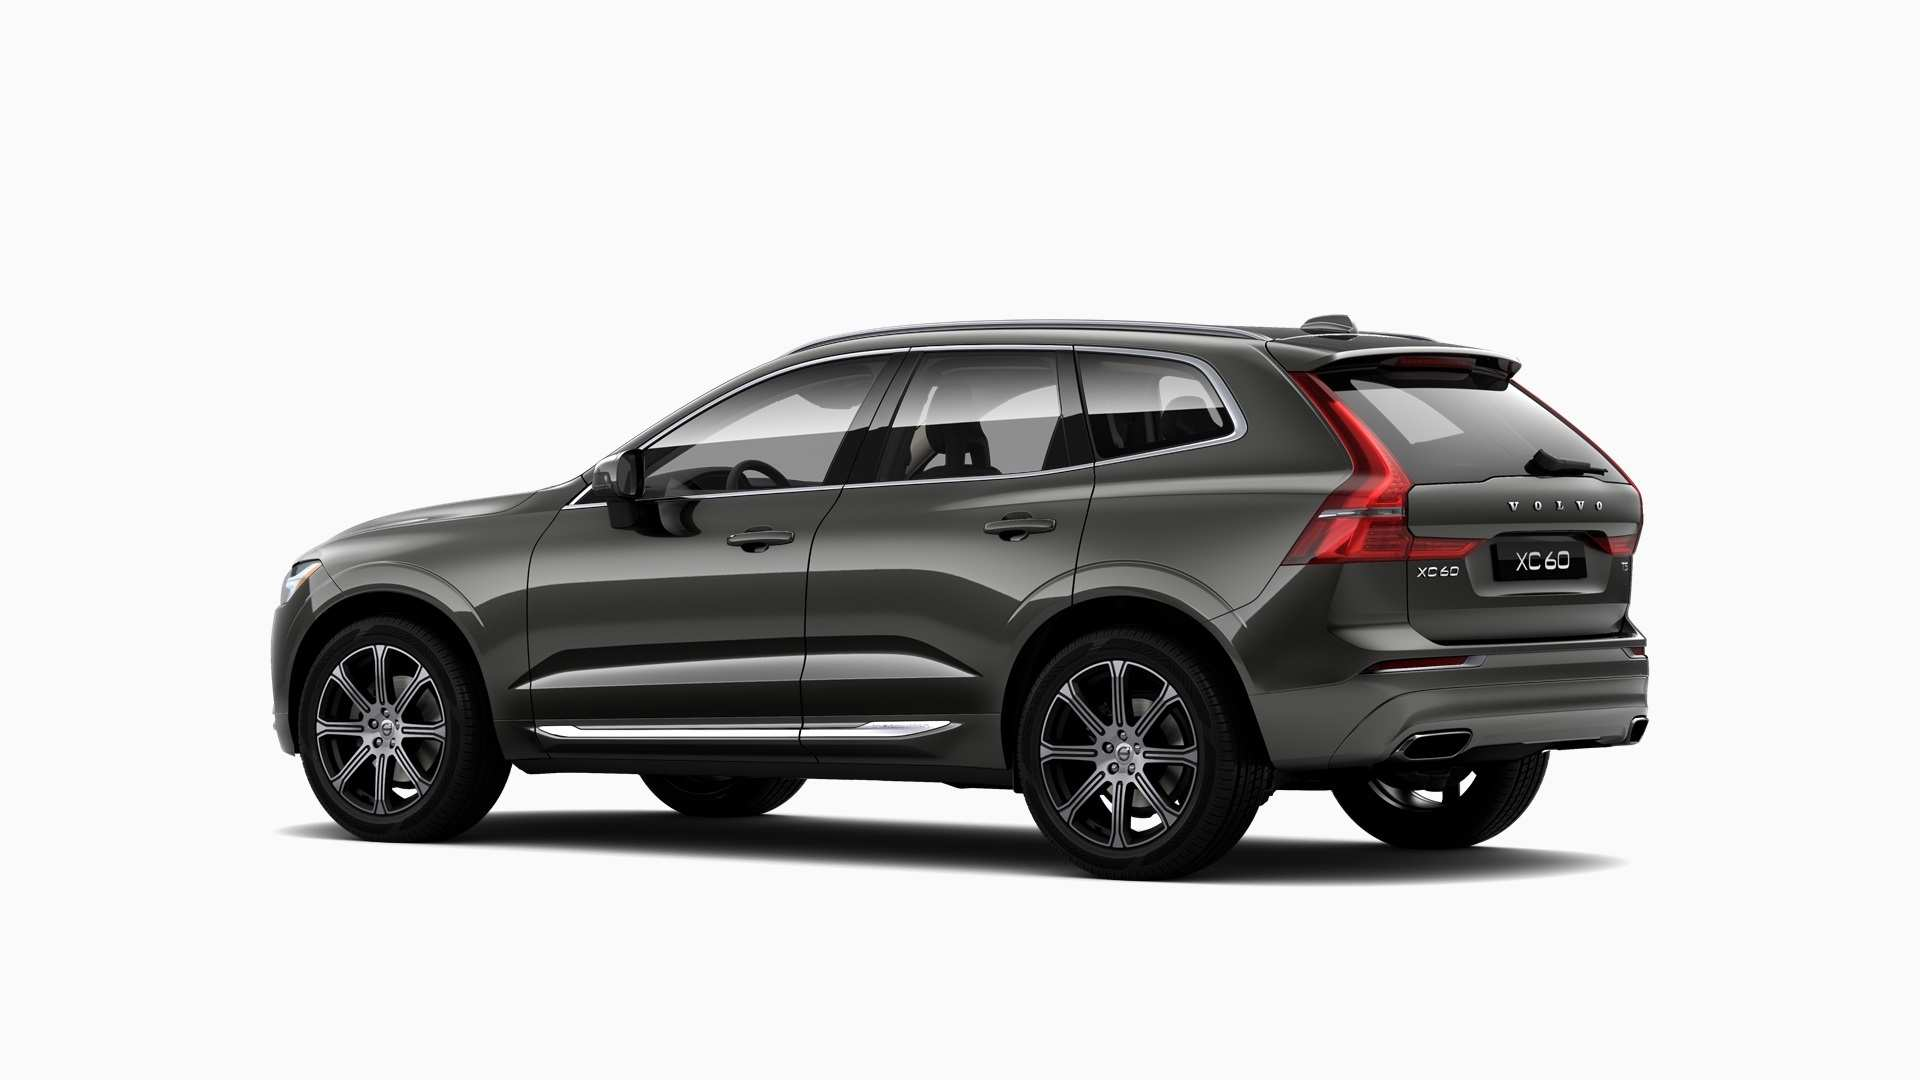 89 New Volvo Xc60 2019 Osmium Grey Pictures